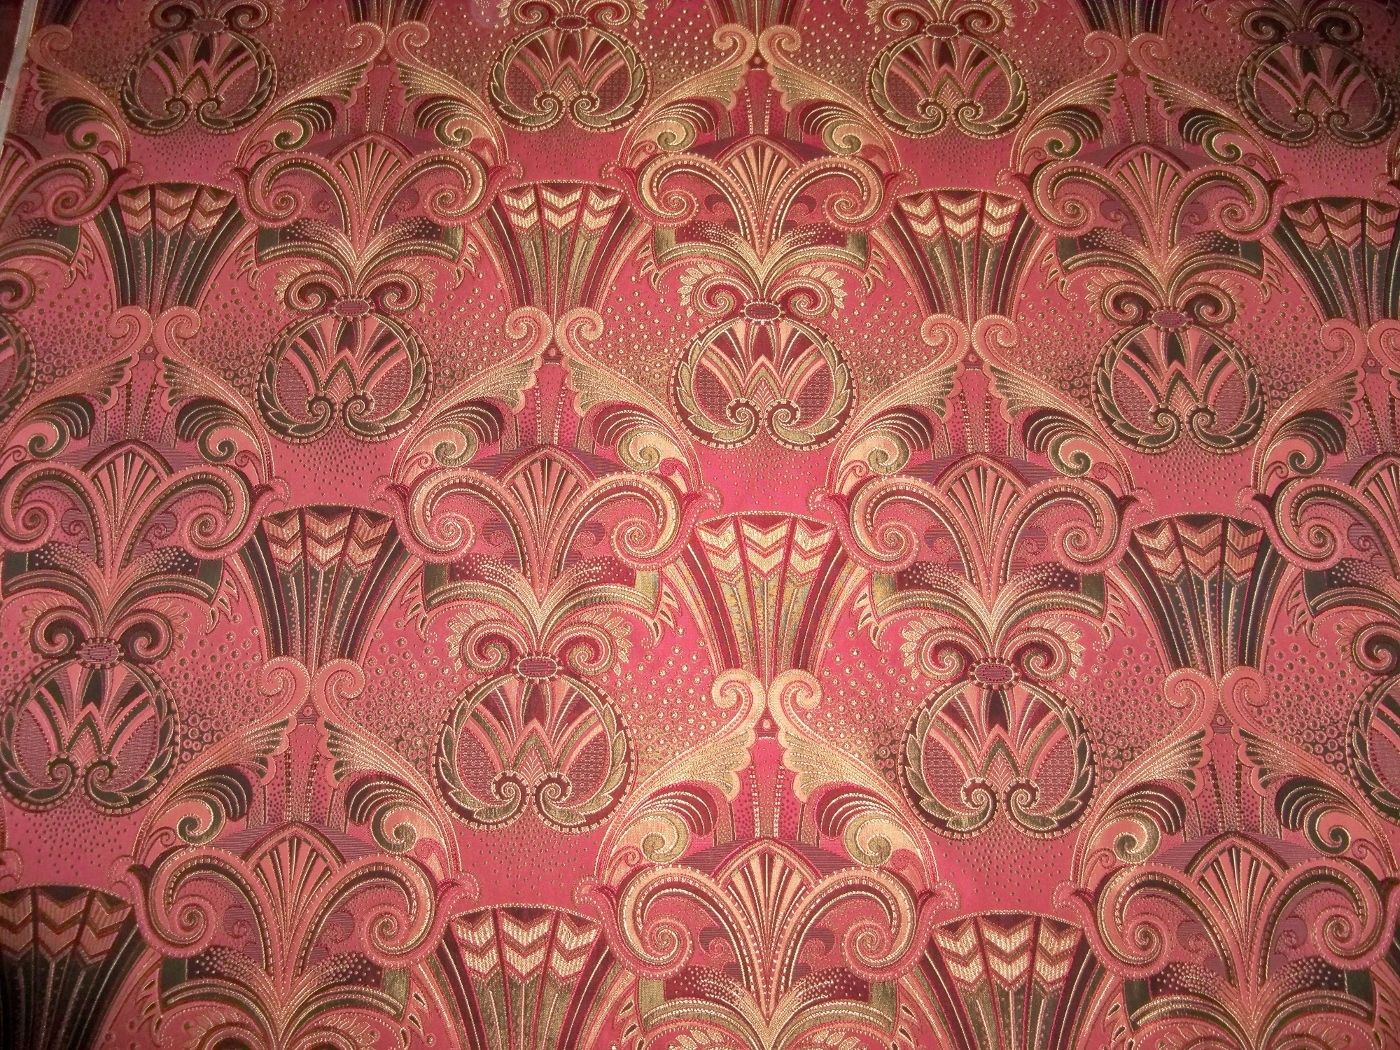 Red And Gold Damask Fabric Damask Fabric Pink Gold 3